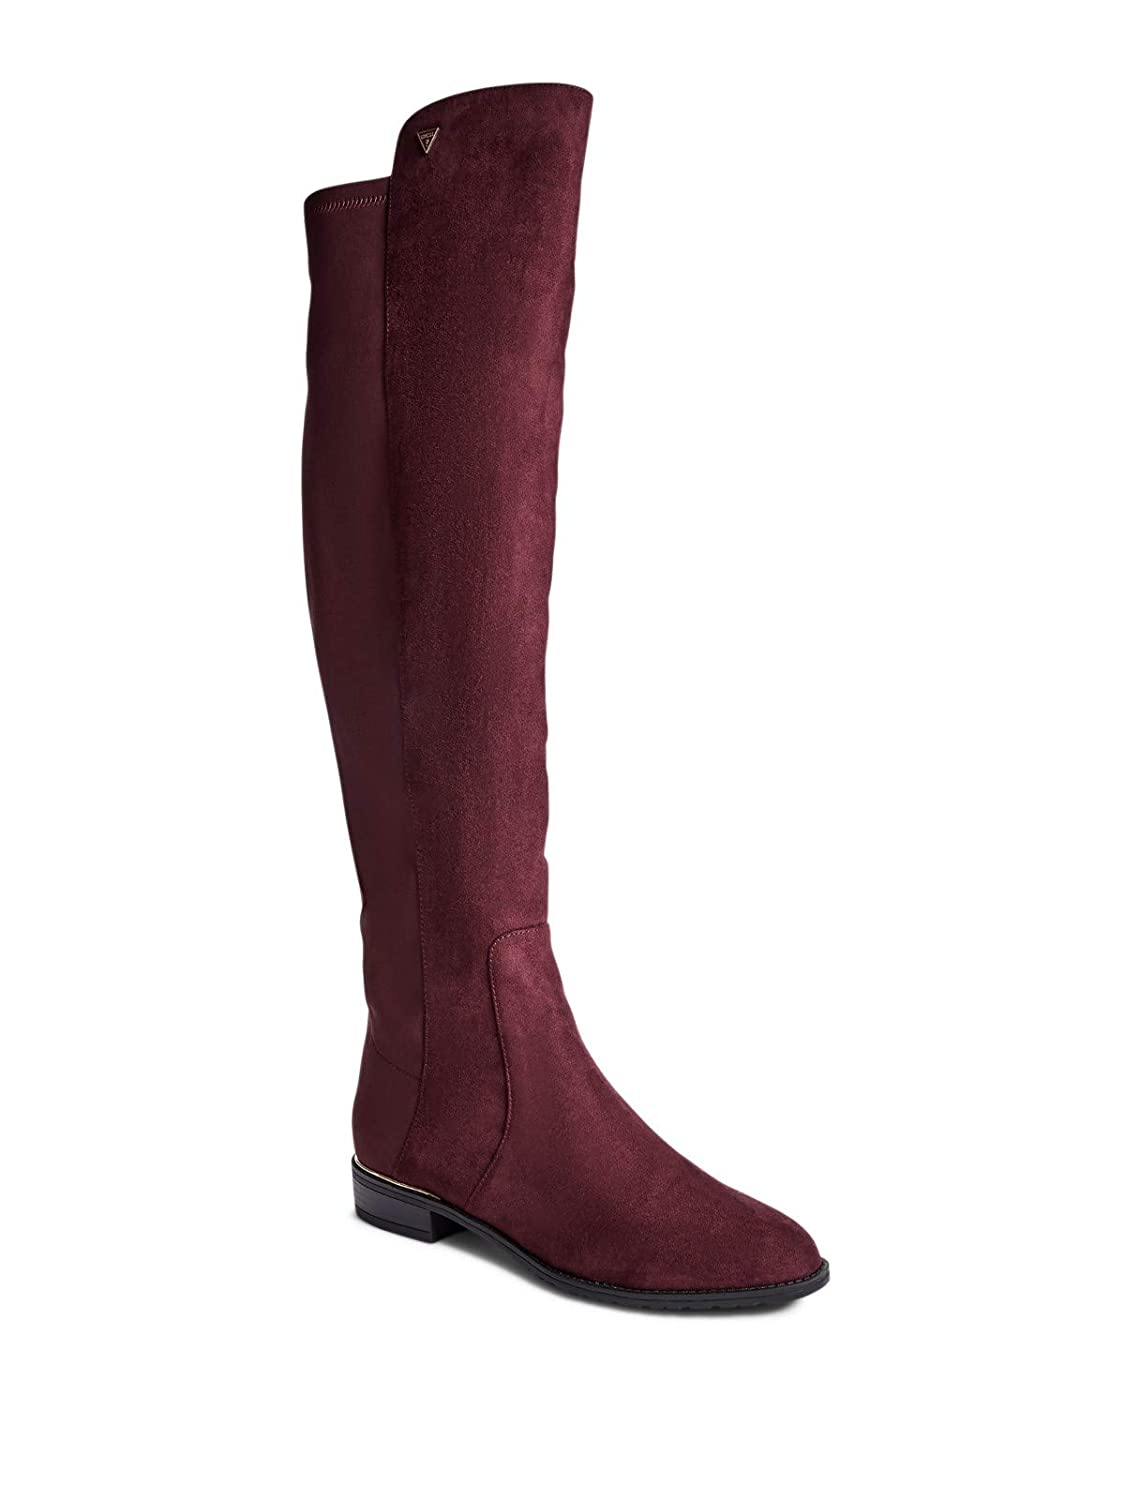 GUESS Factory Women's Shire Over-The-Knee Suede Boots GuessFactory